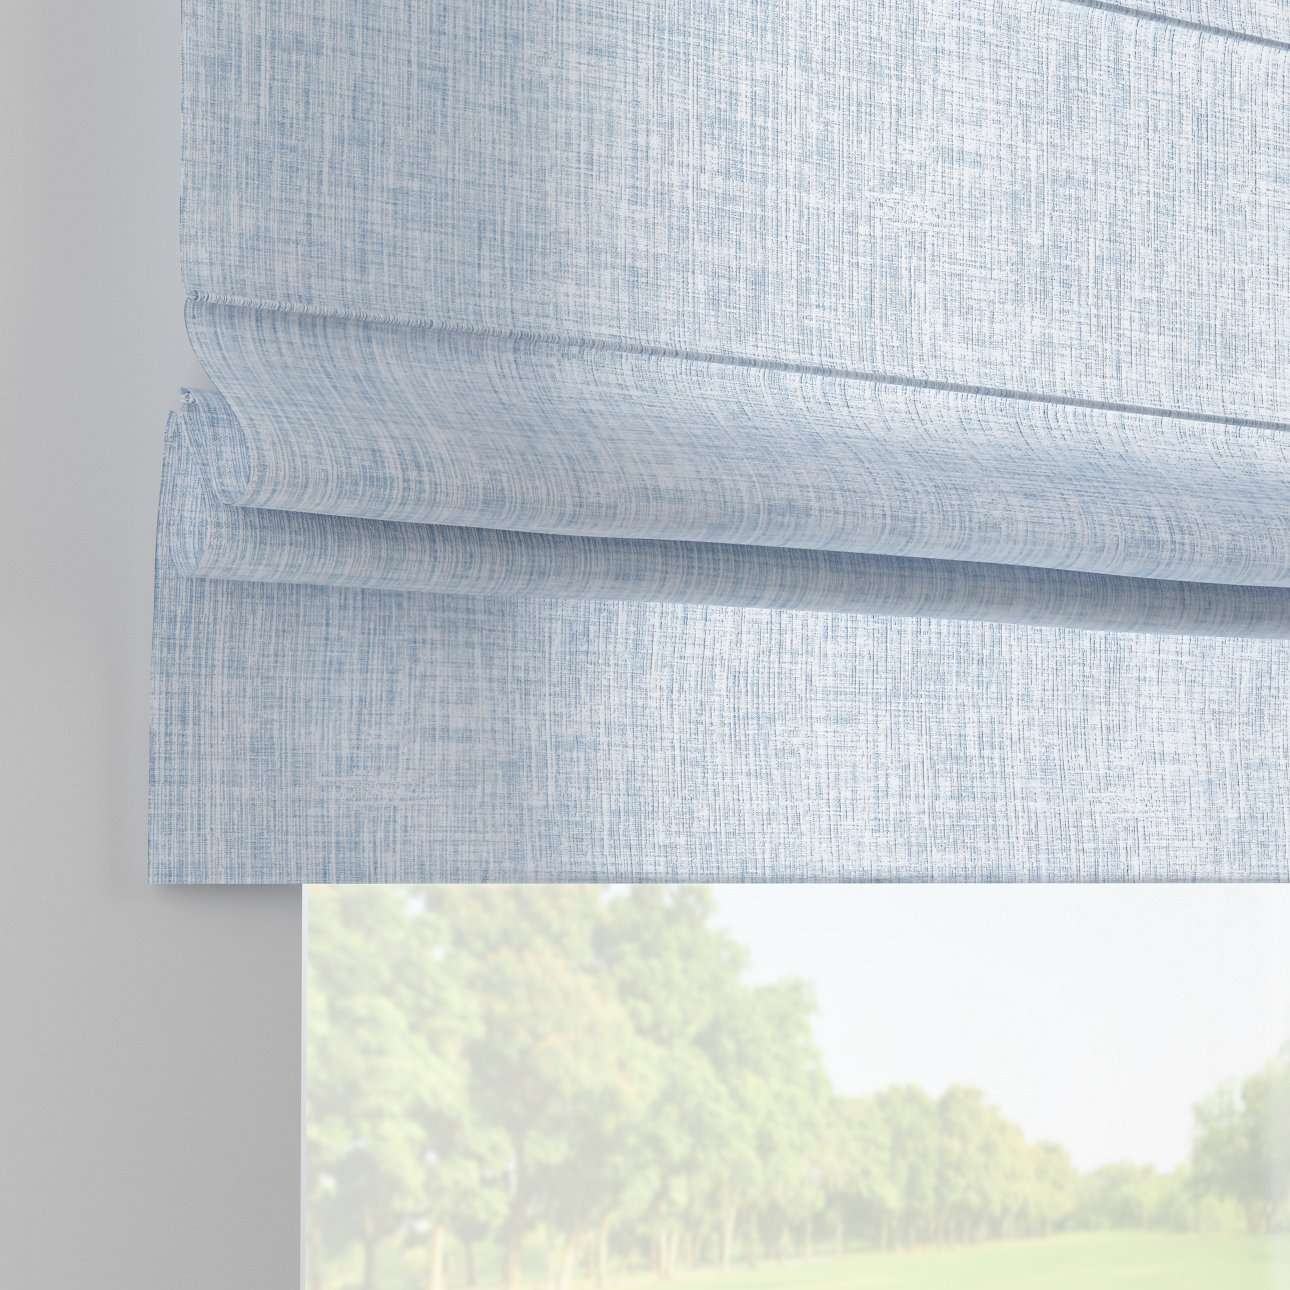 Padva roman blind  80 x 170 cm (31.5 x 67 inch) in collection Aquarelle, fabric: 140-74